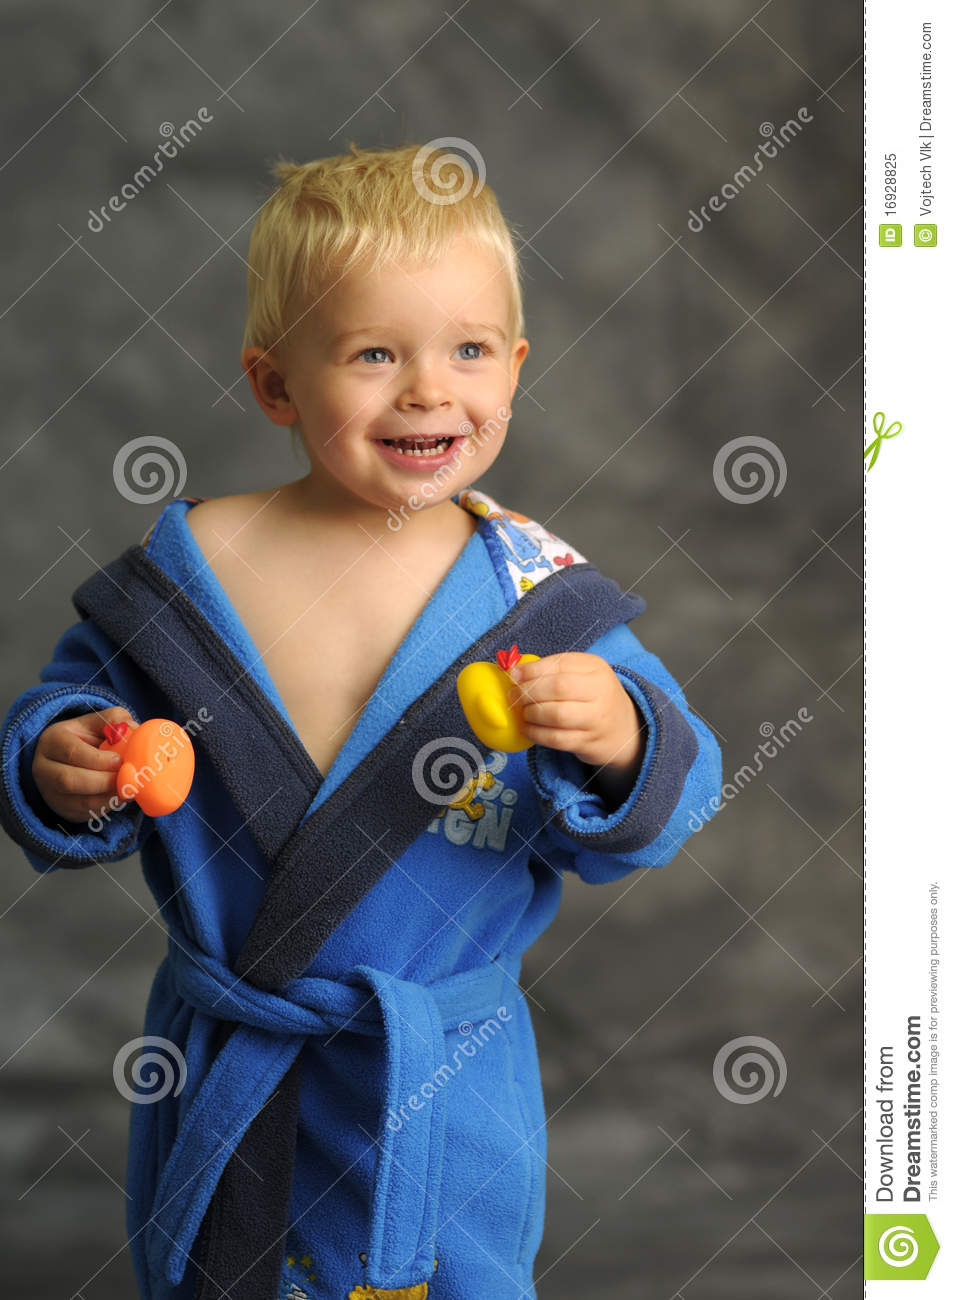 111 Little Boy Bath Robe Photos Free Royalty Free Stock Photos From Dreamstime